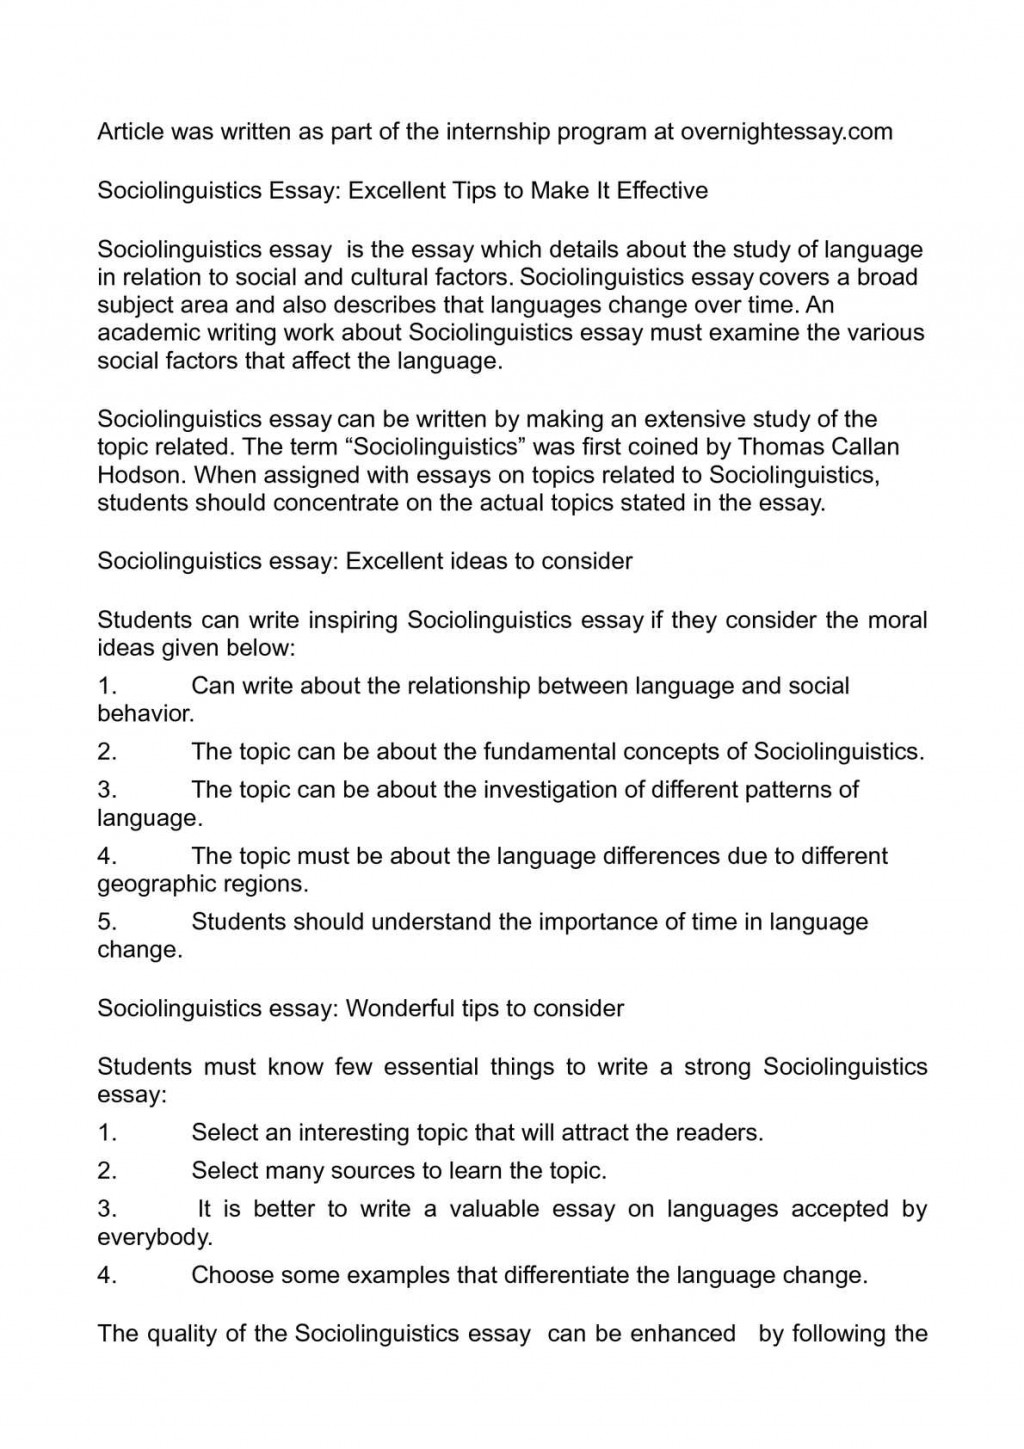 004 P1 Essay Example Change For The Beautiful Better How Can We World To Large